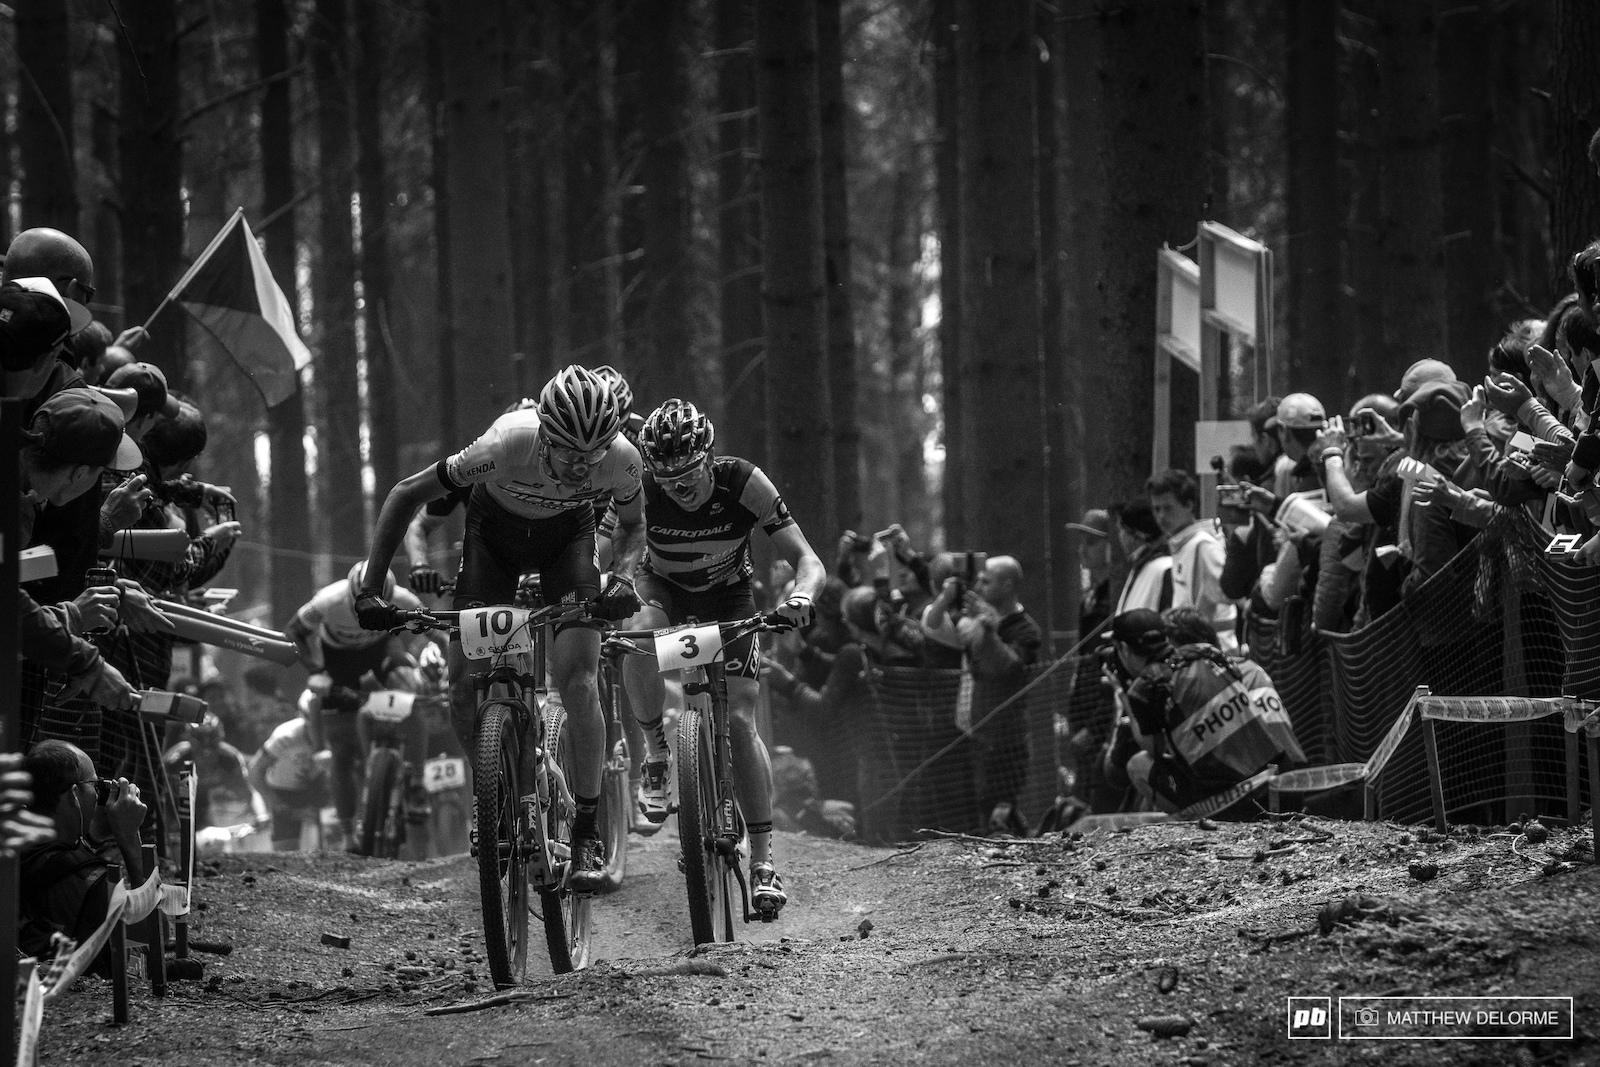 Tempier dragging Marotte up the long climb. Tempier finished sixth on the day and Marotte took fourth.